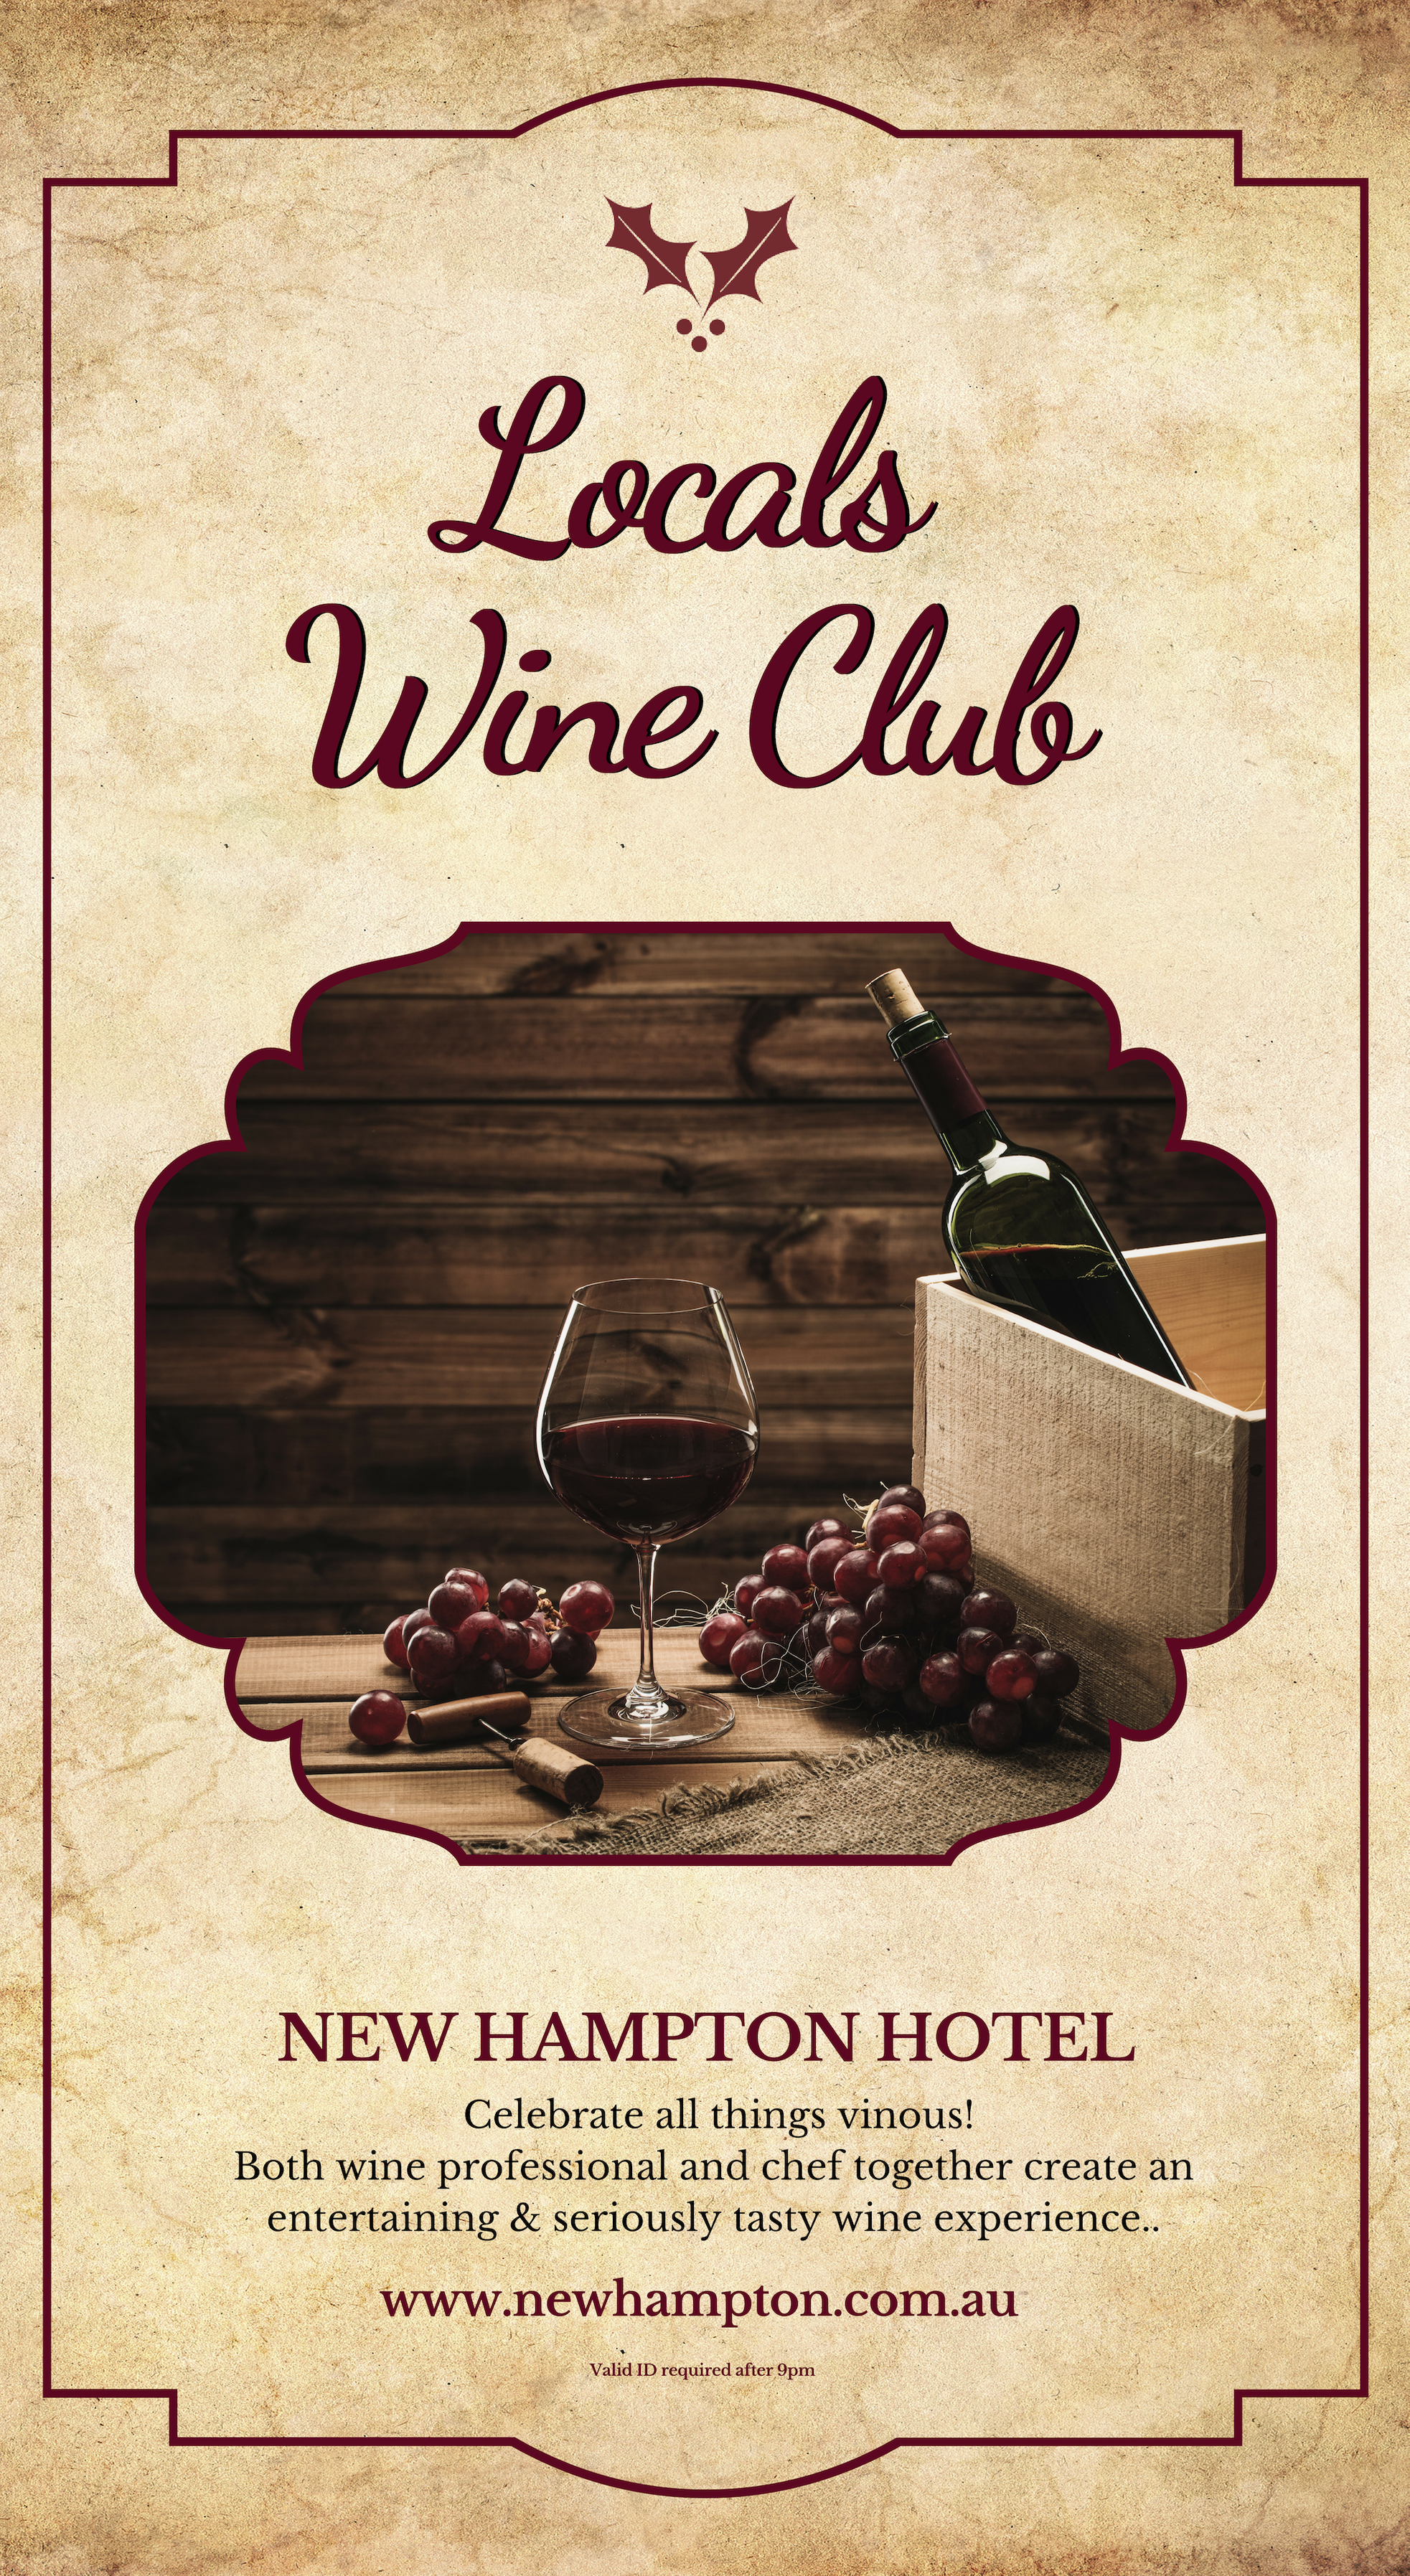 Local's Wine Club - Held the first Thursday every month, come and explore wines of the world with matching canapes, Hosted by our Wine Educator Paul Crighton & head Chef Aron Johnson.Buy tickets online now